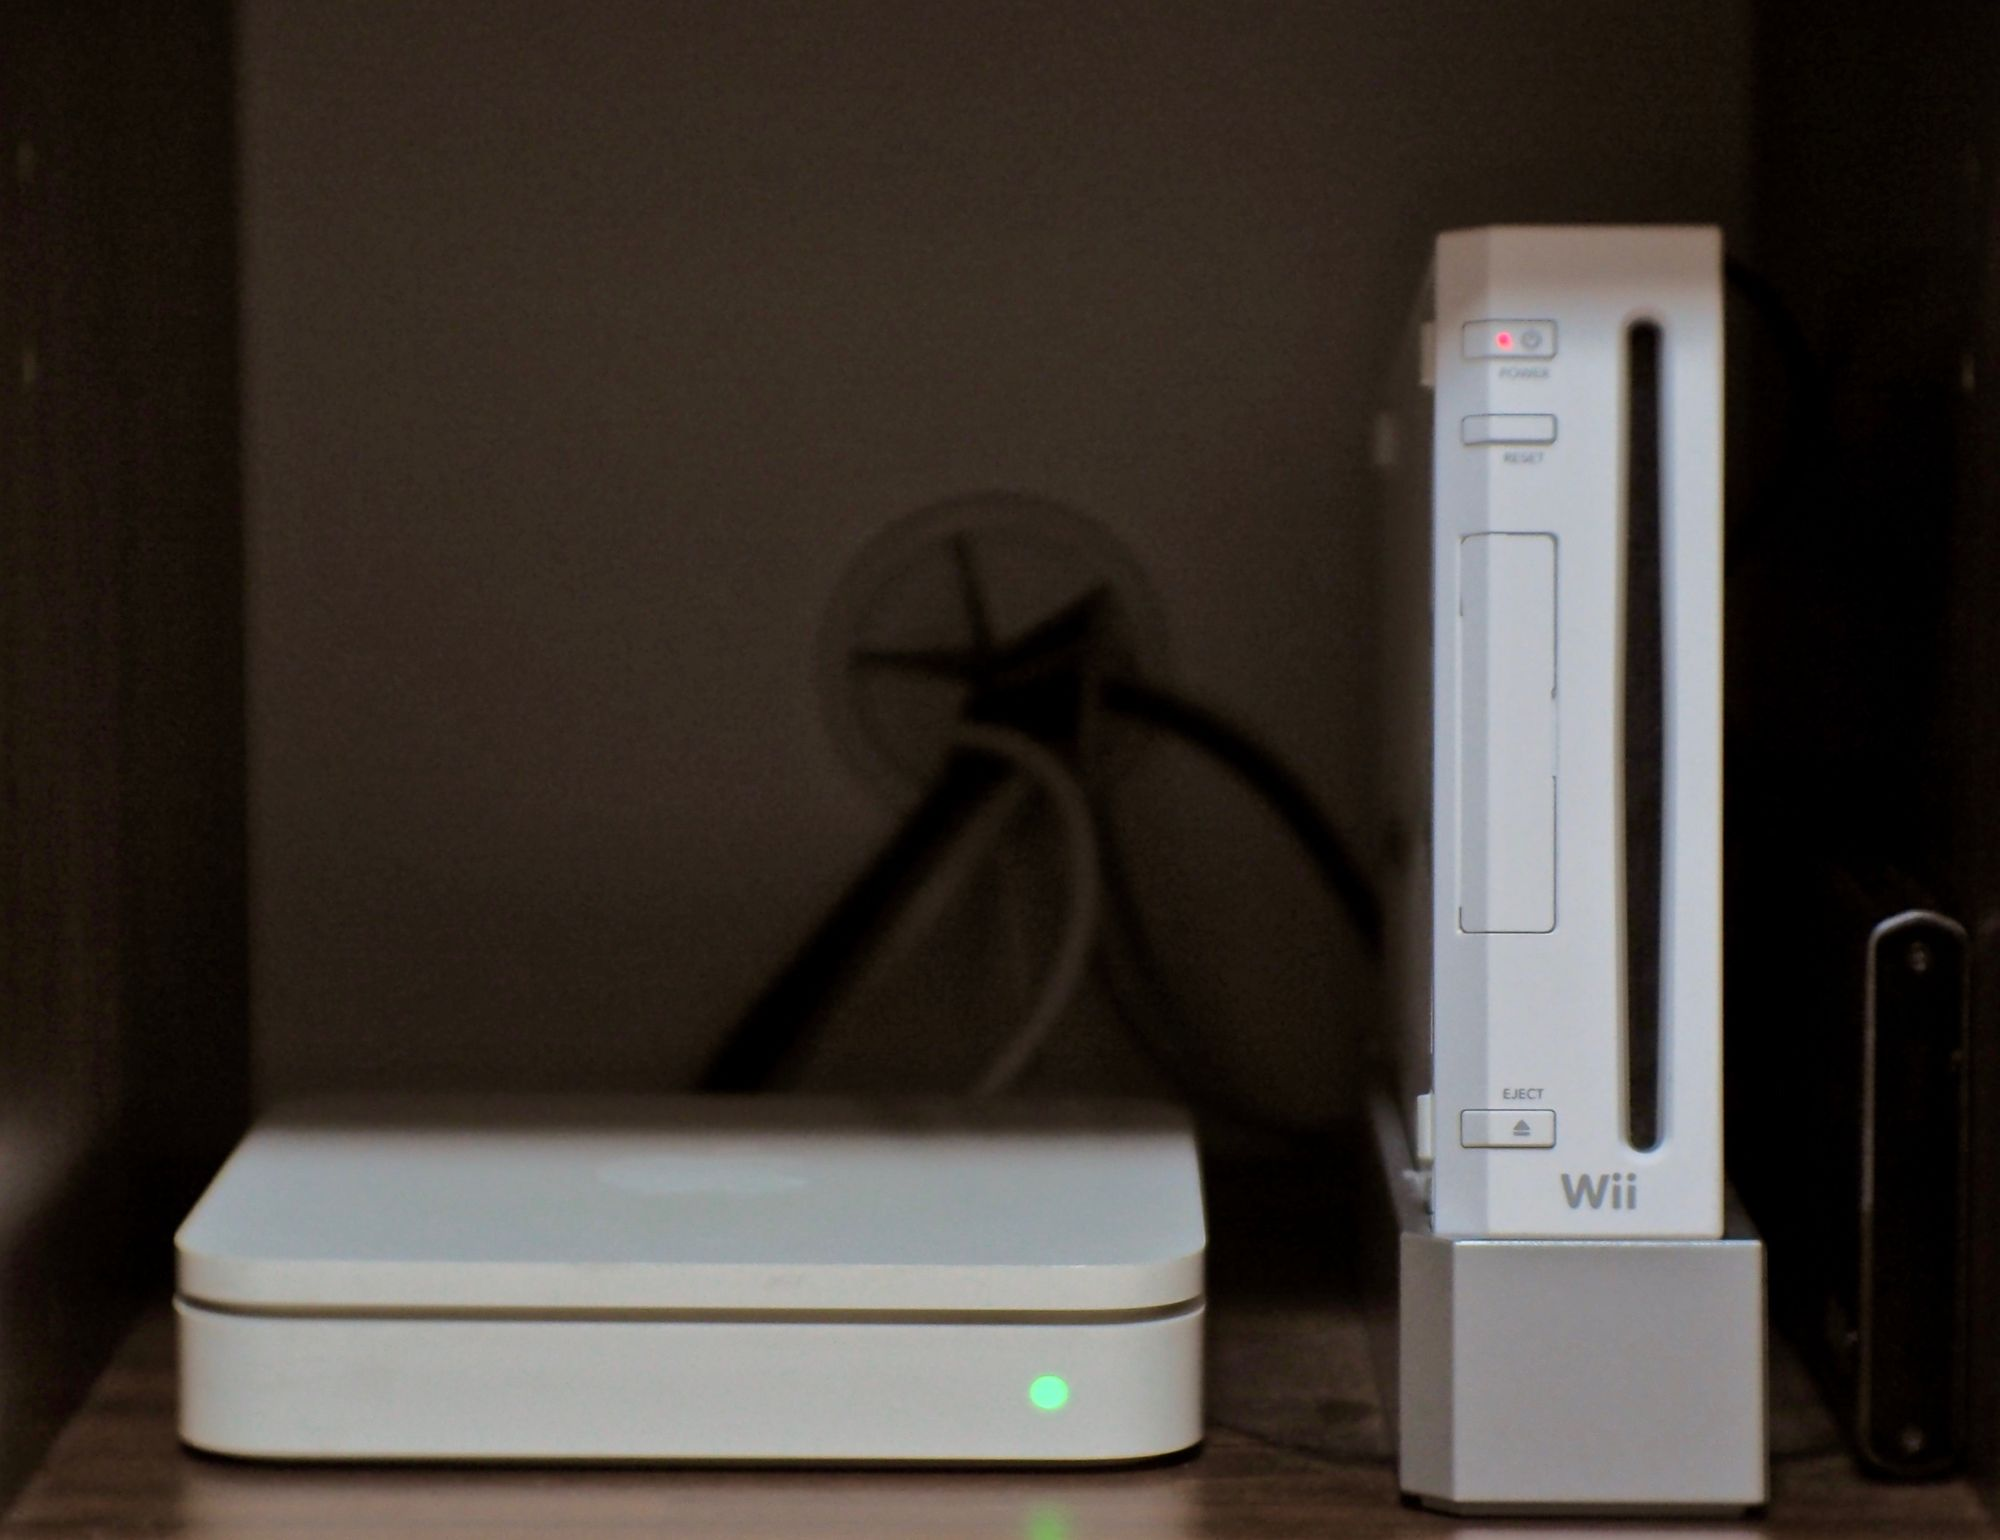 Image showing a Nintendo Wii standing next to an Apple Airport Extreme